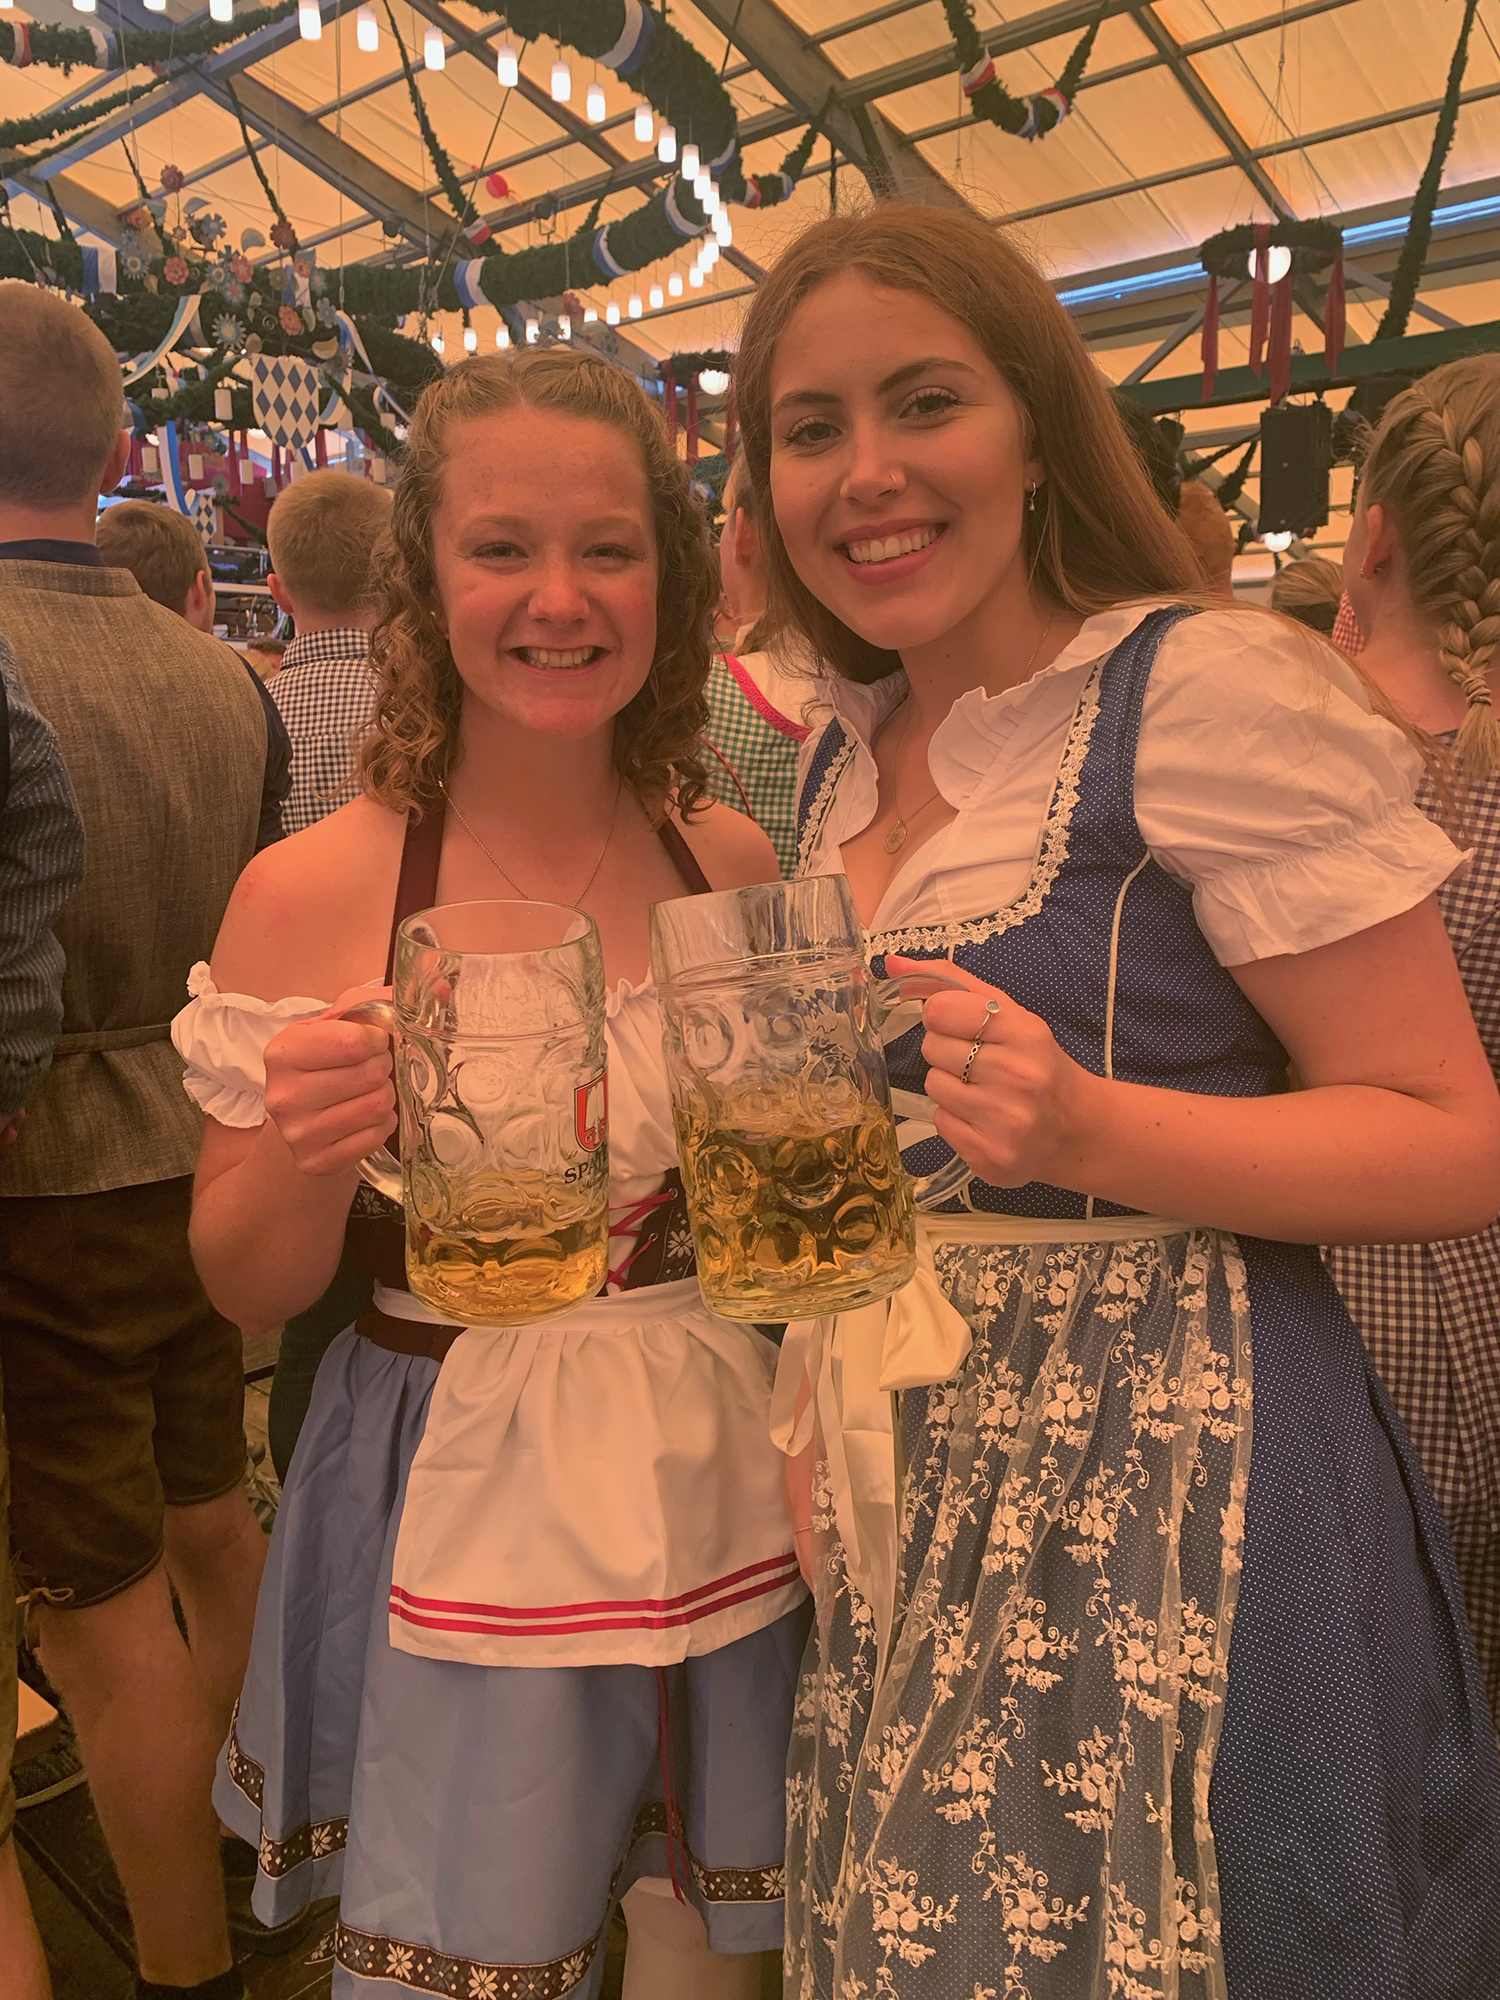 Ceiledh and Lauren wearing Dirndls and holding large beer steins